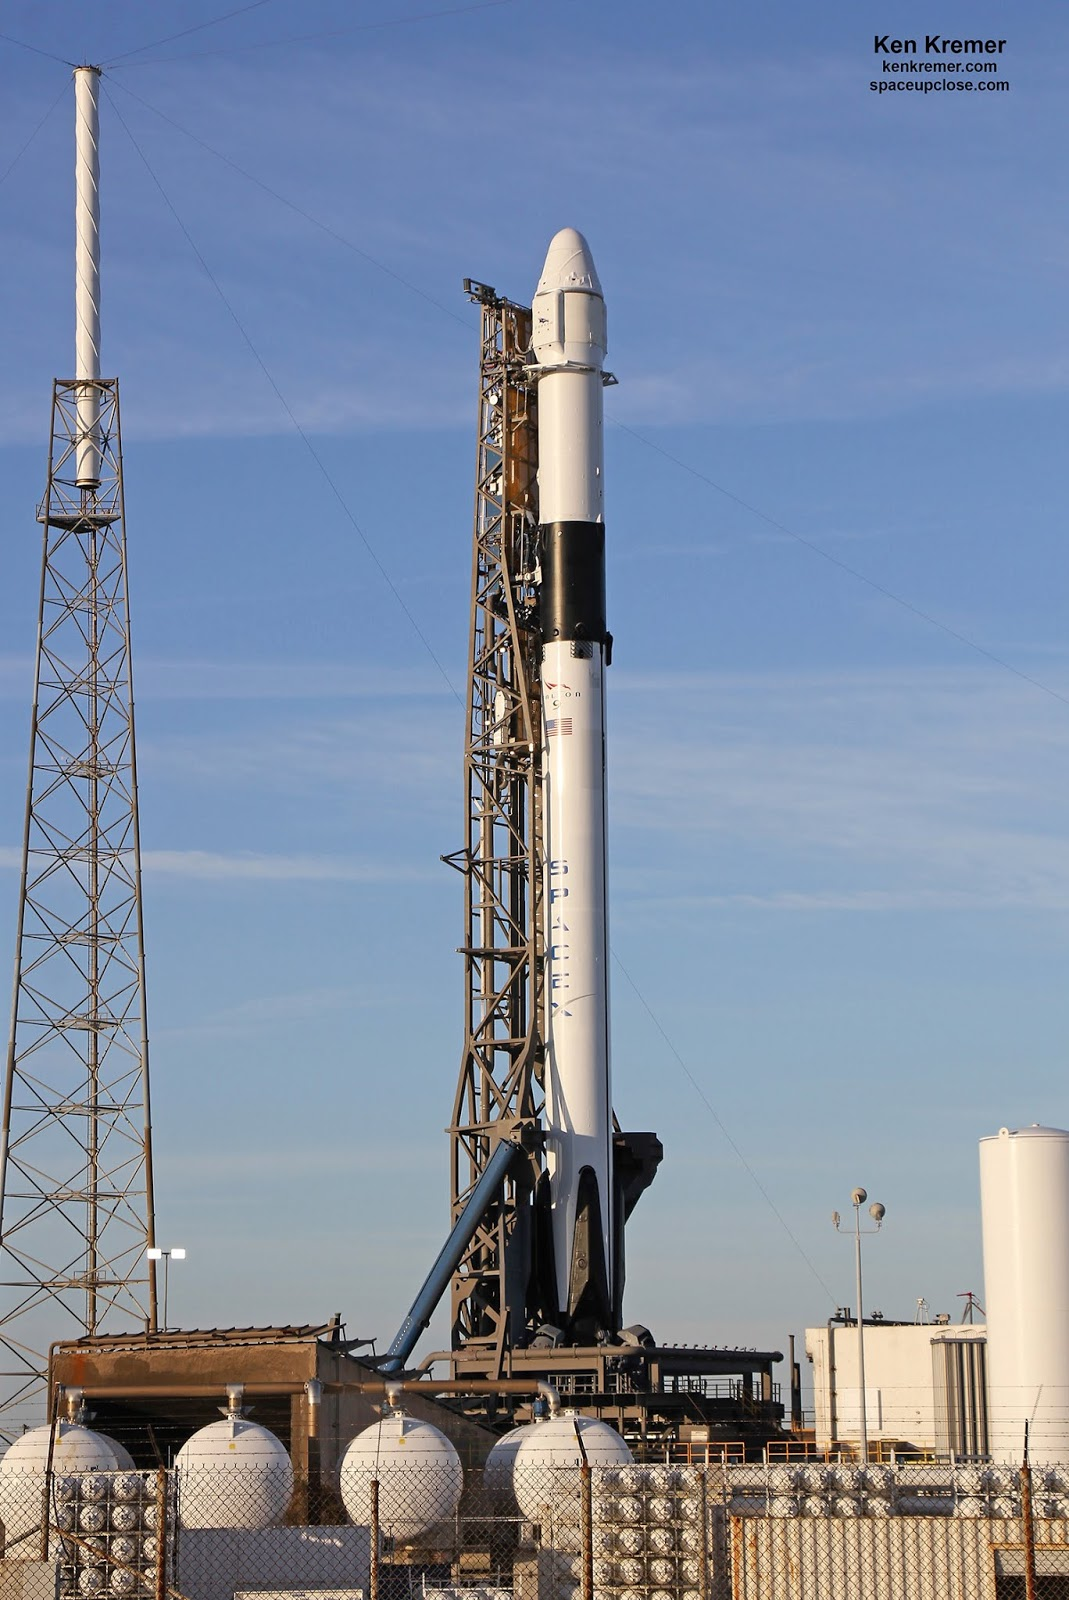 Space UpClose: SpaceX, NASA Set for Dragon Commercial Cargo